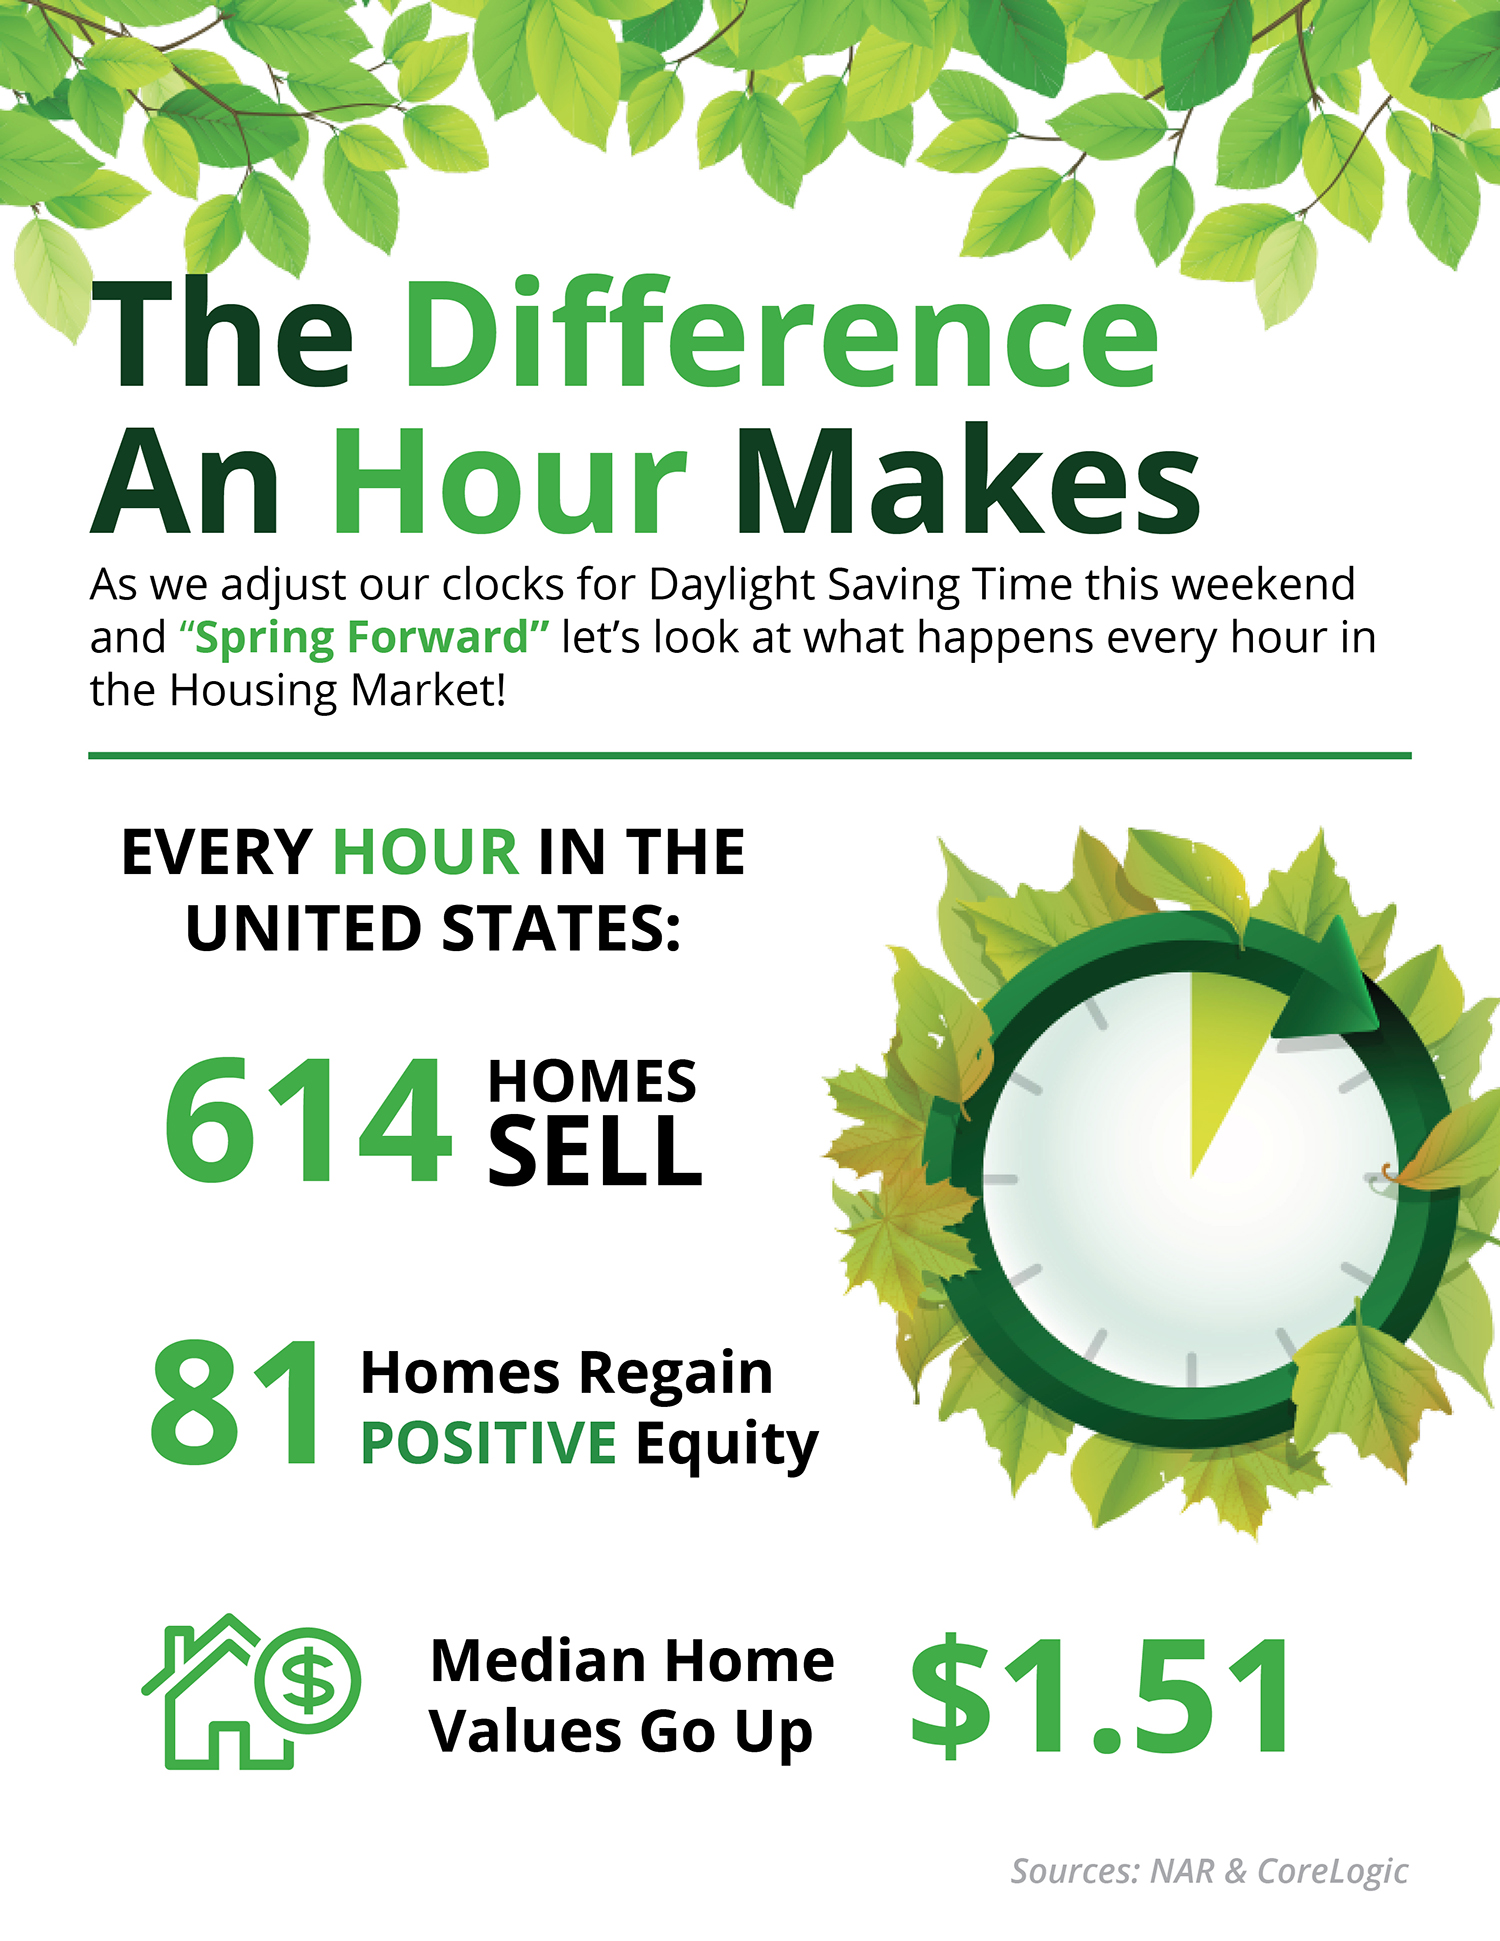 Housing Market: What happens in one hour